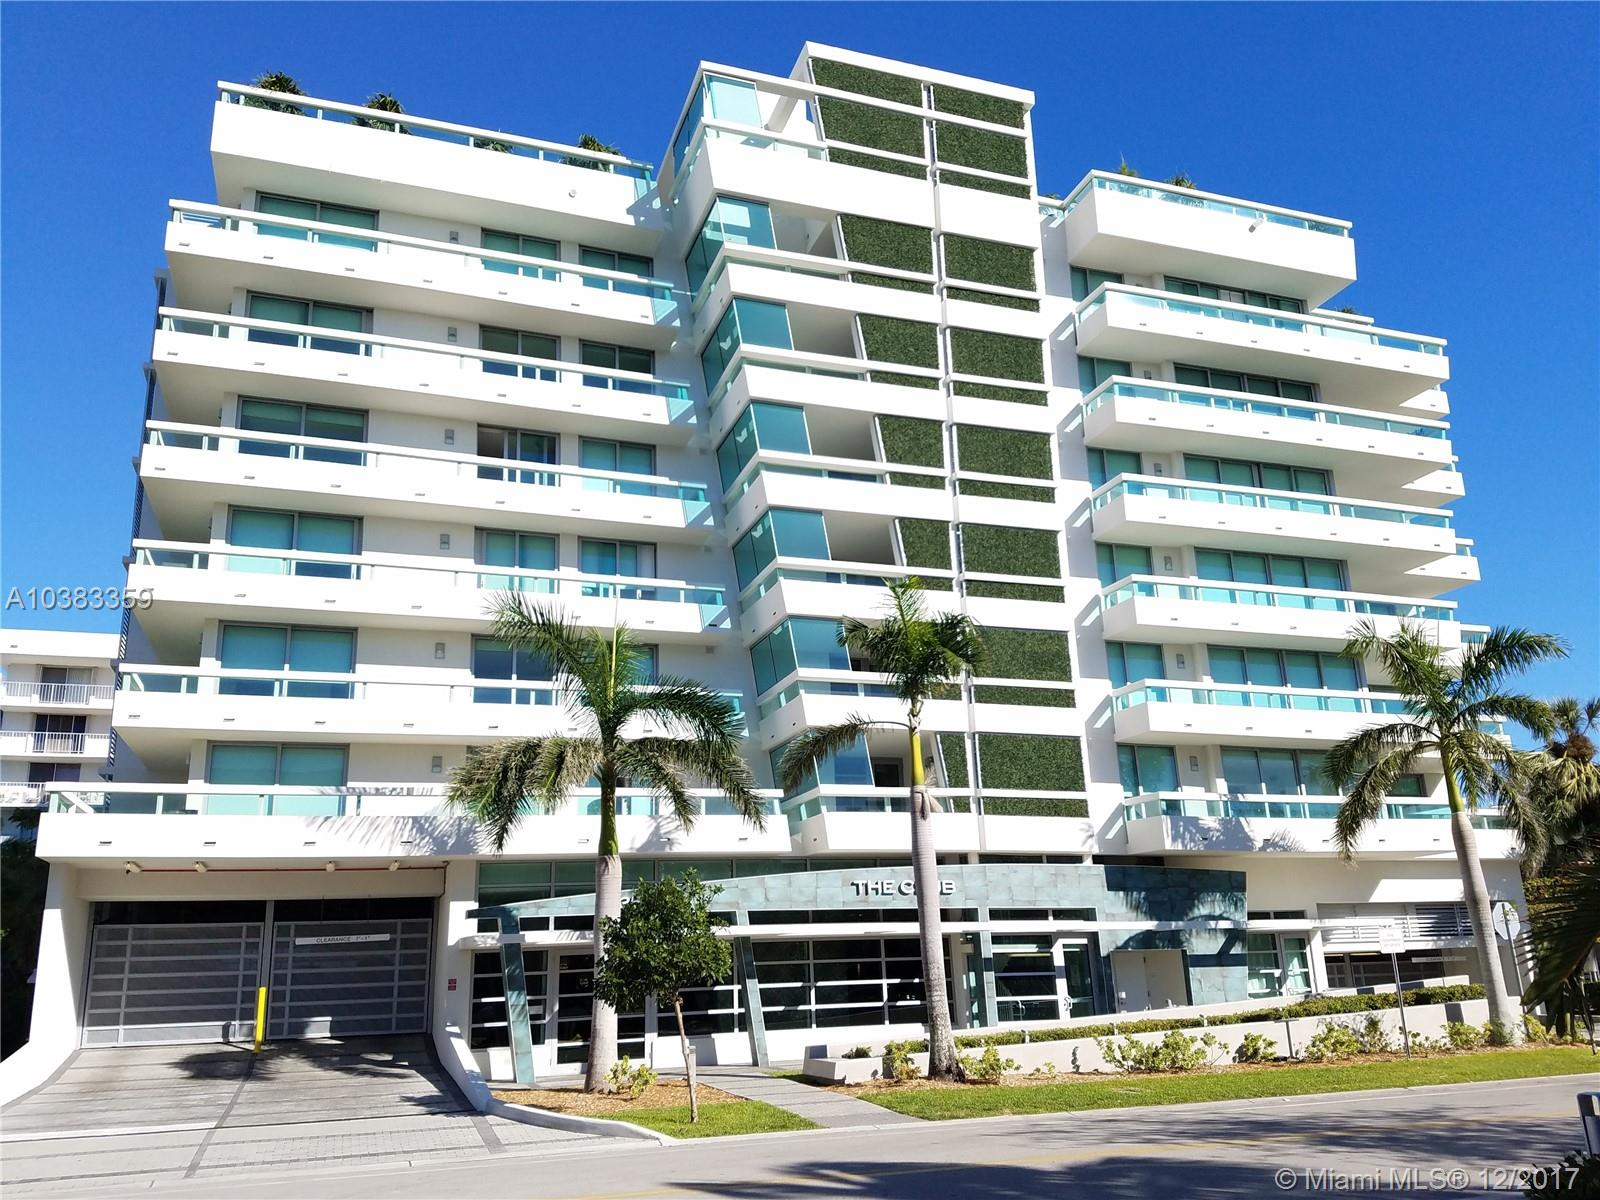 ************Occupied by a tenant available to show once a week.********************                                                                                                                                                          